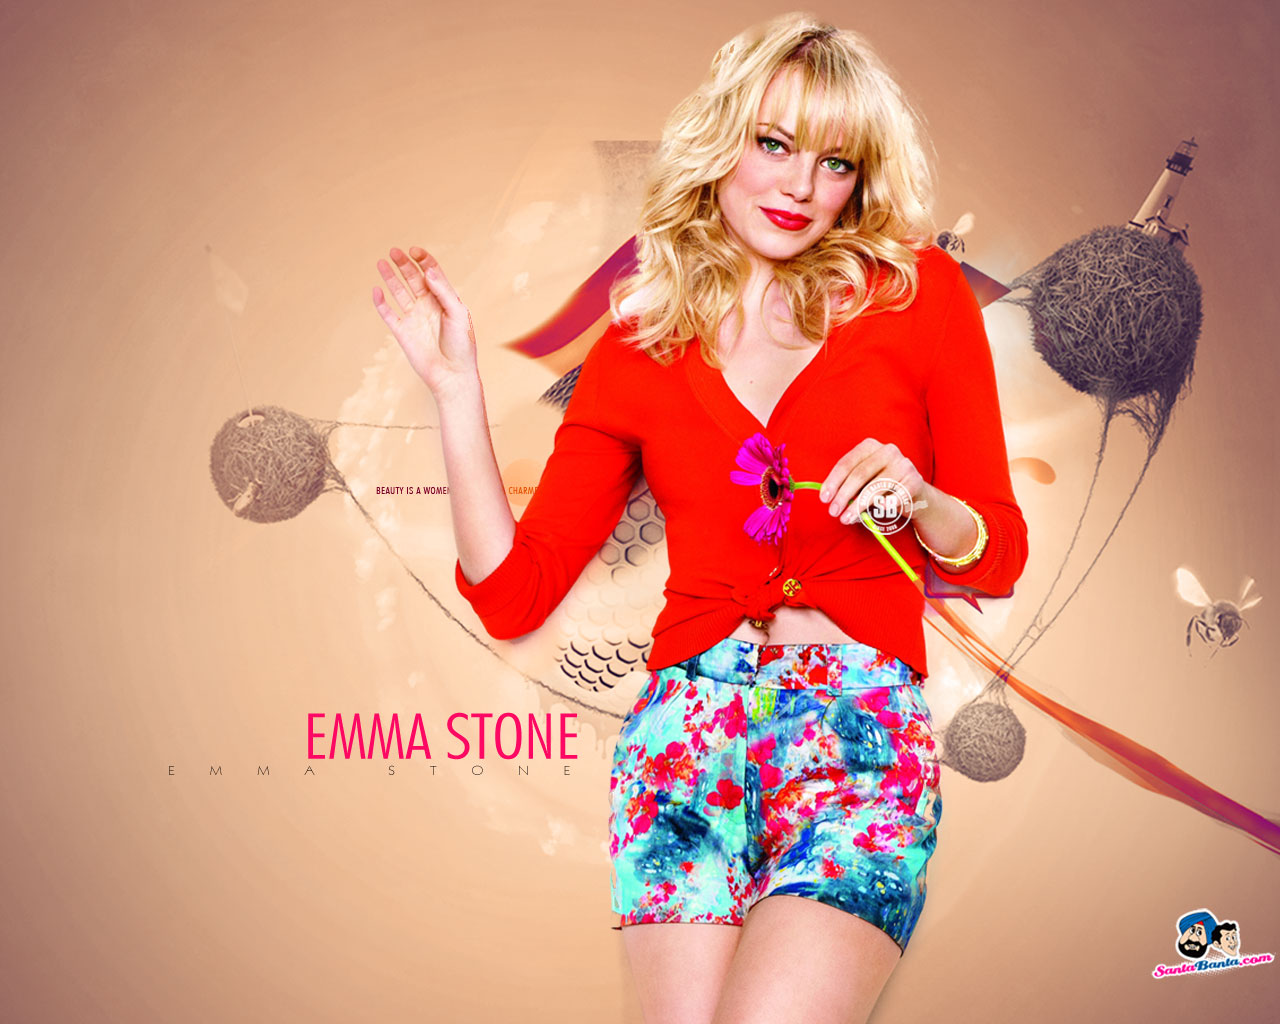 Cute Baby Hd Wallpaper Free Download Emma Stone Hd Wallpapers Most Beautiful Places In The